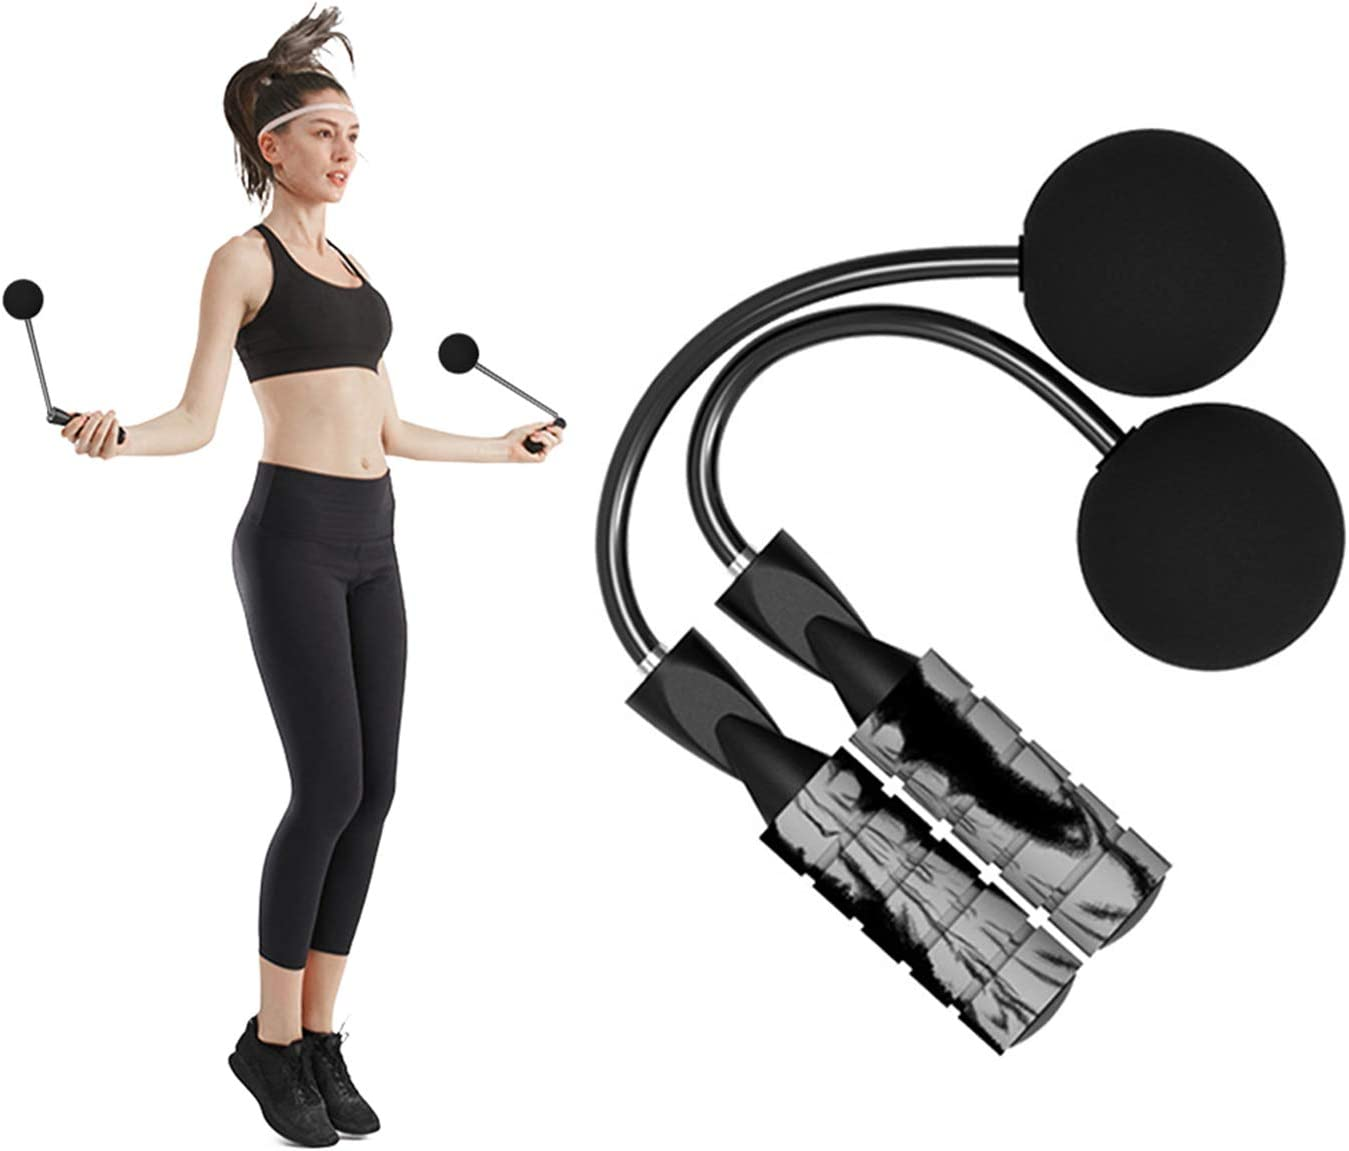 Mgotu Weighted Fitness Cordless Jump Rope Wireless Skipping Rope Indoor Outdoor